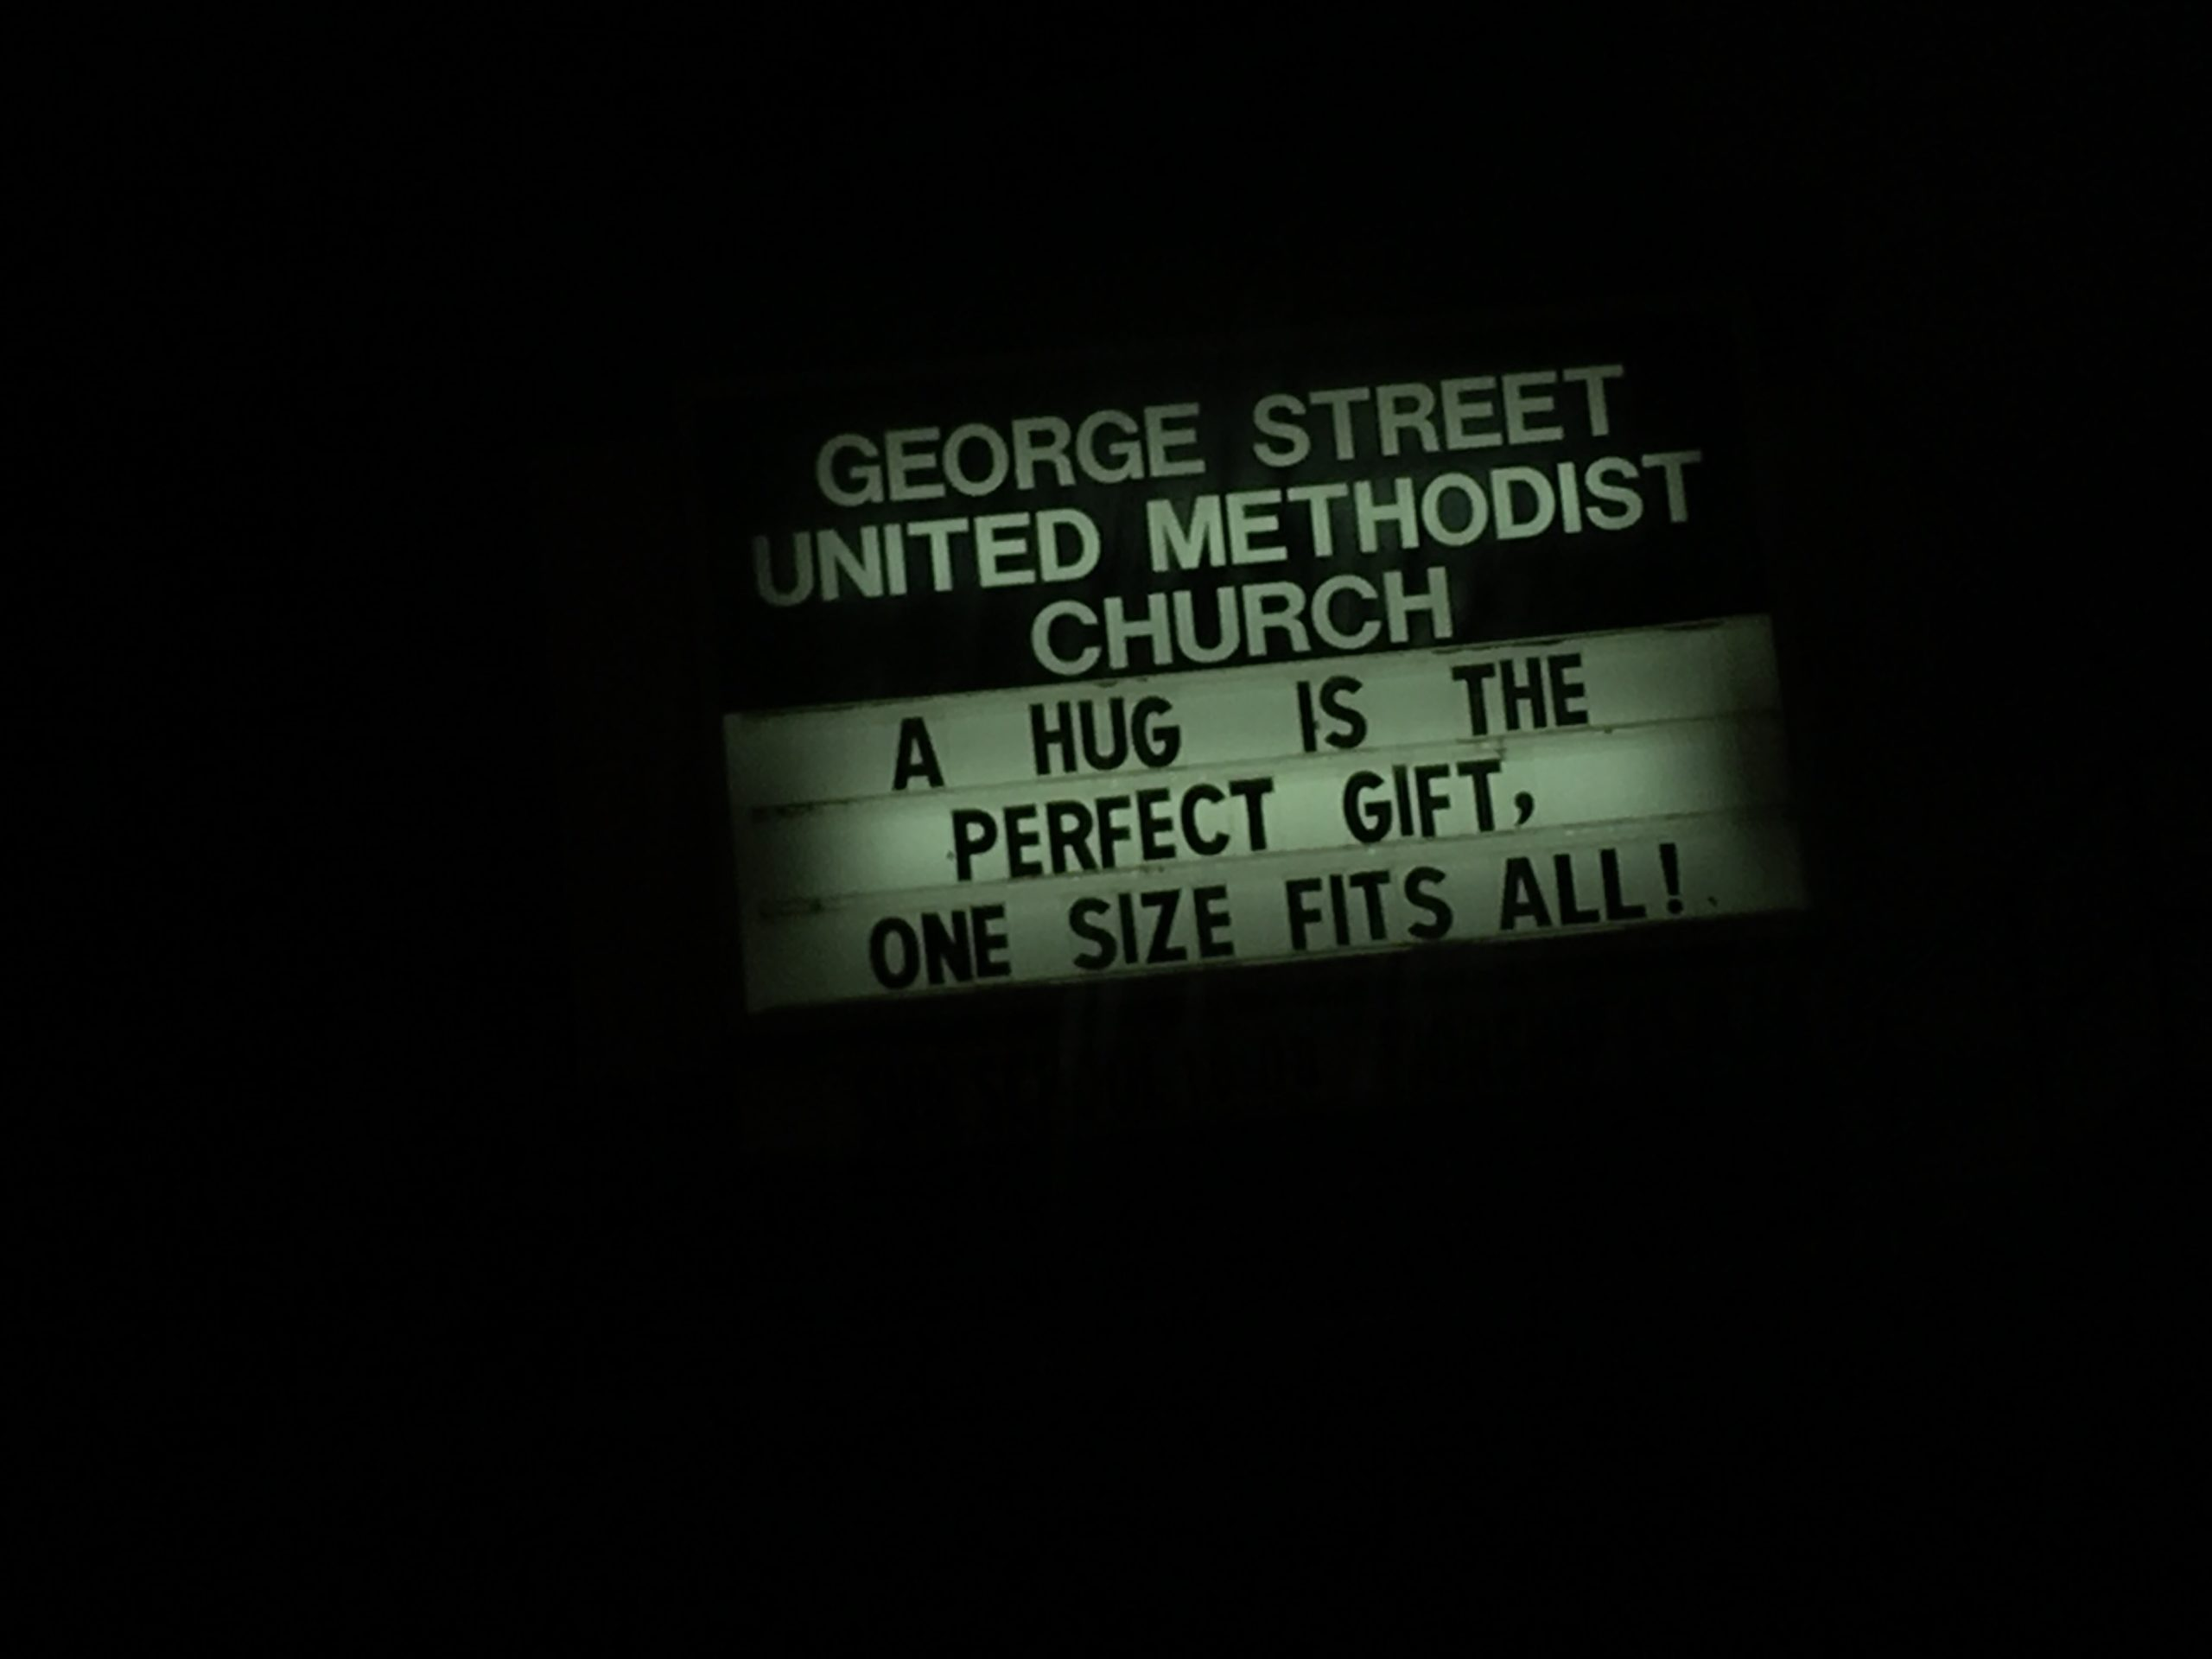 A Hug Church Sign